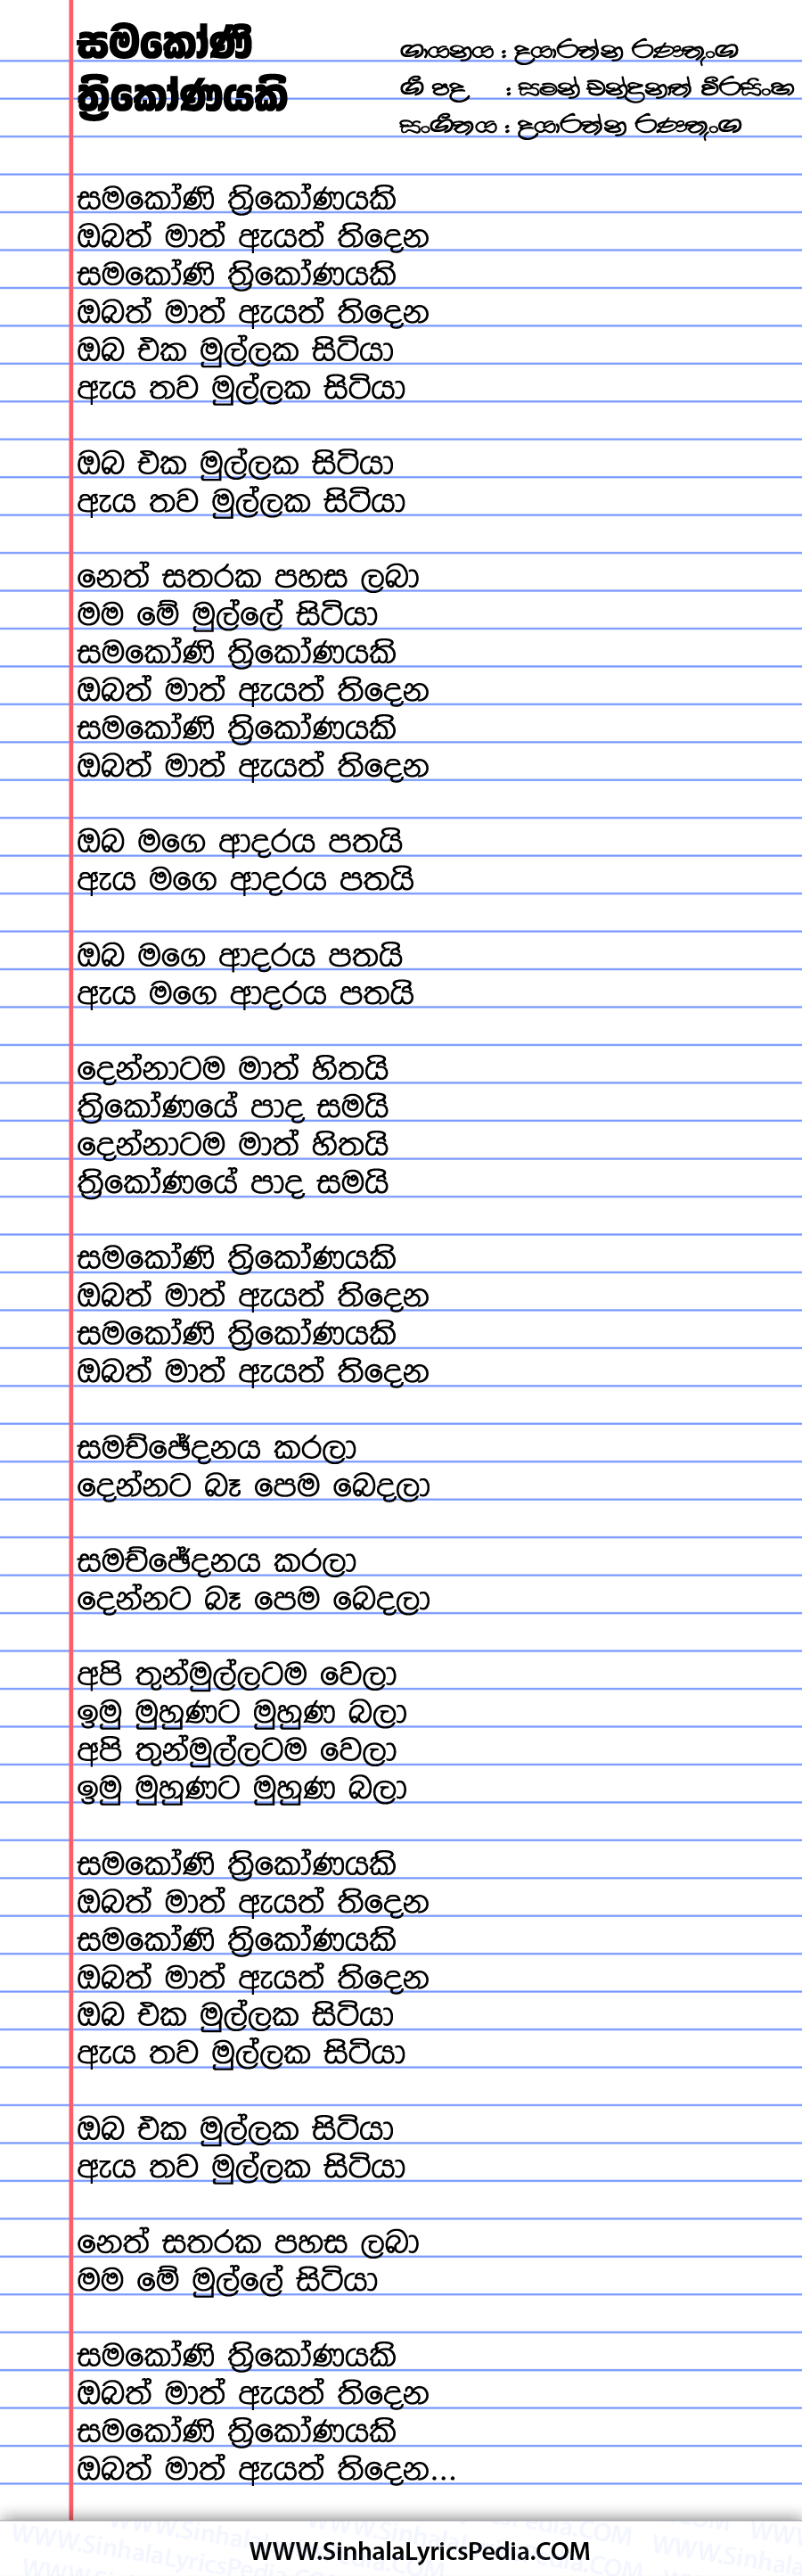 Samakoni Thrikonayaki Song Lyrics